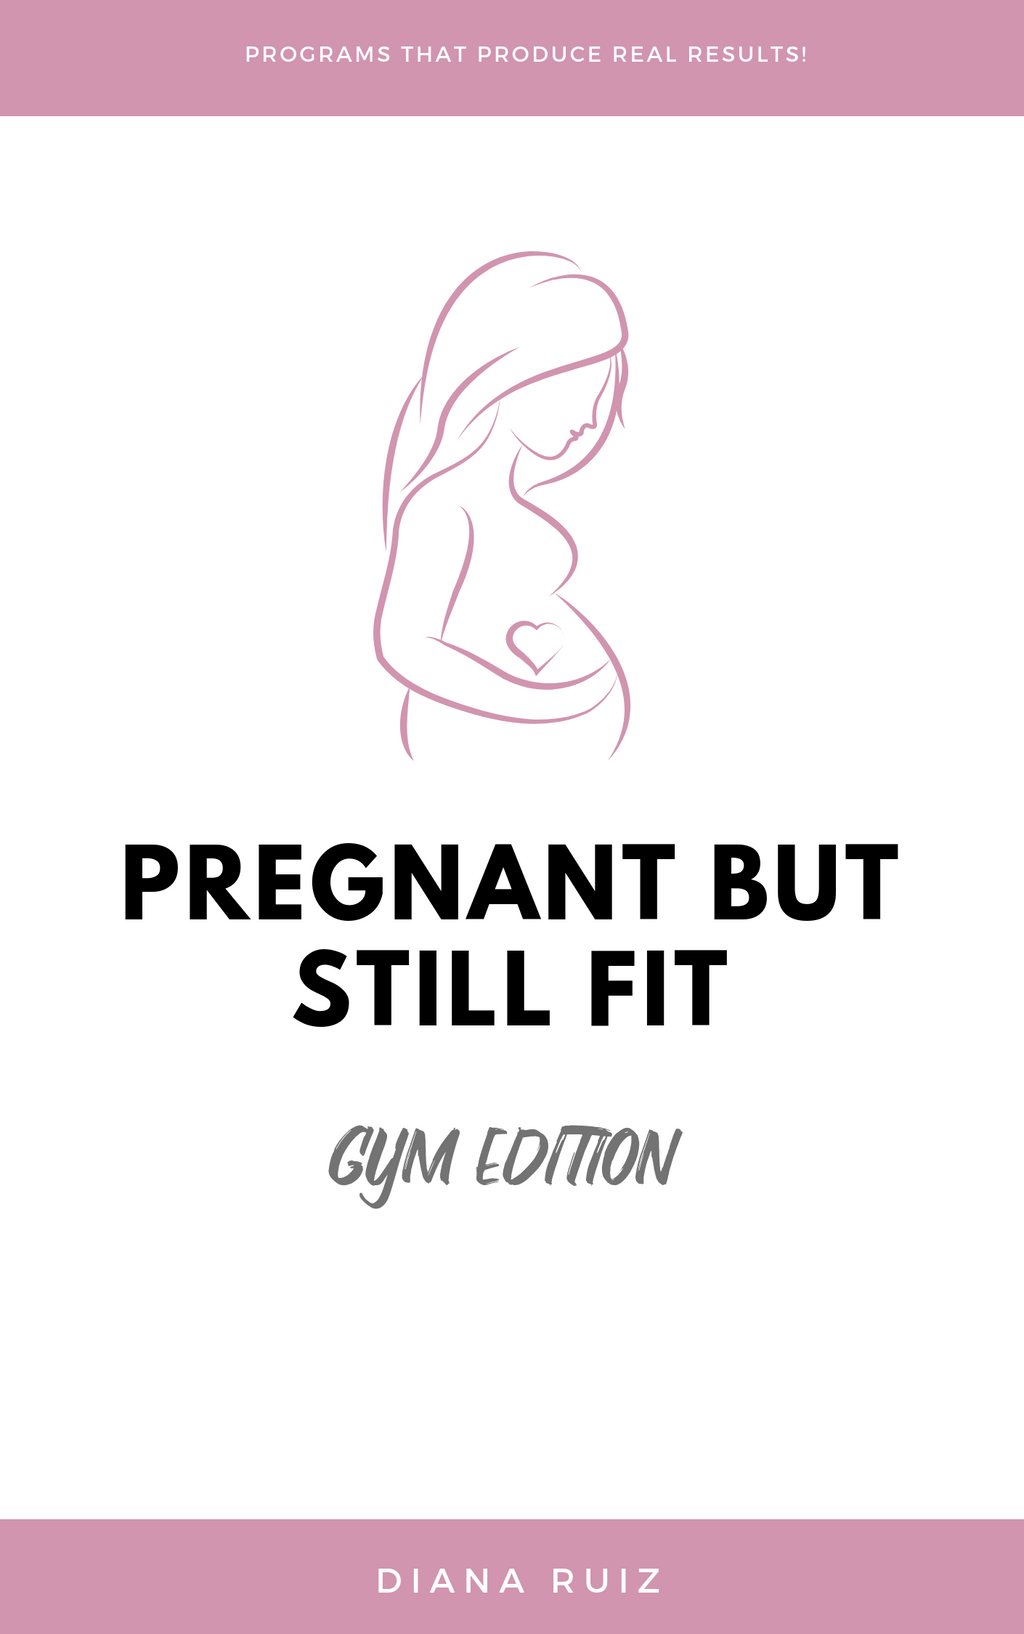 Pregnancy Gym Guide